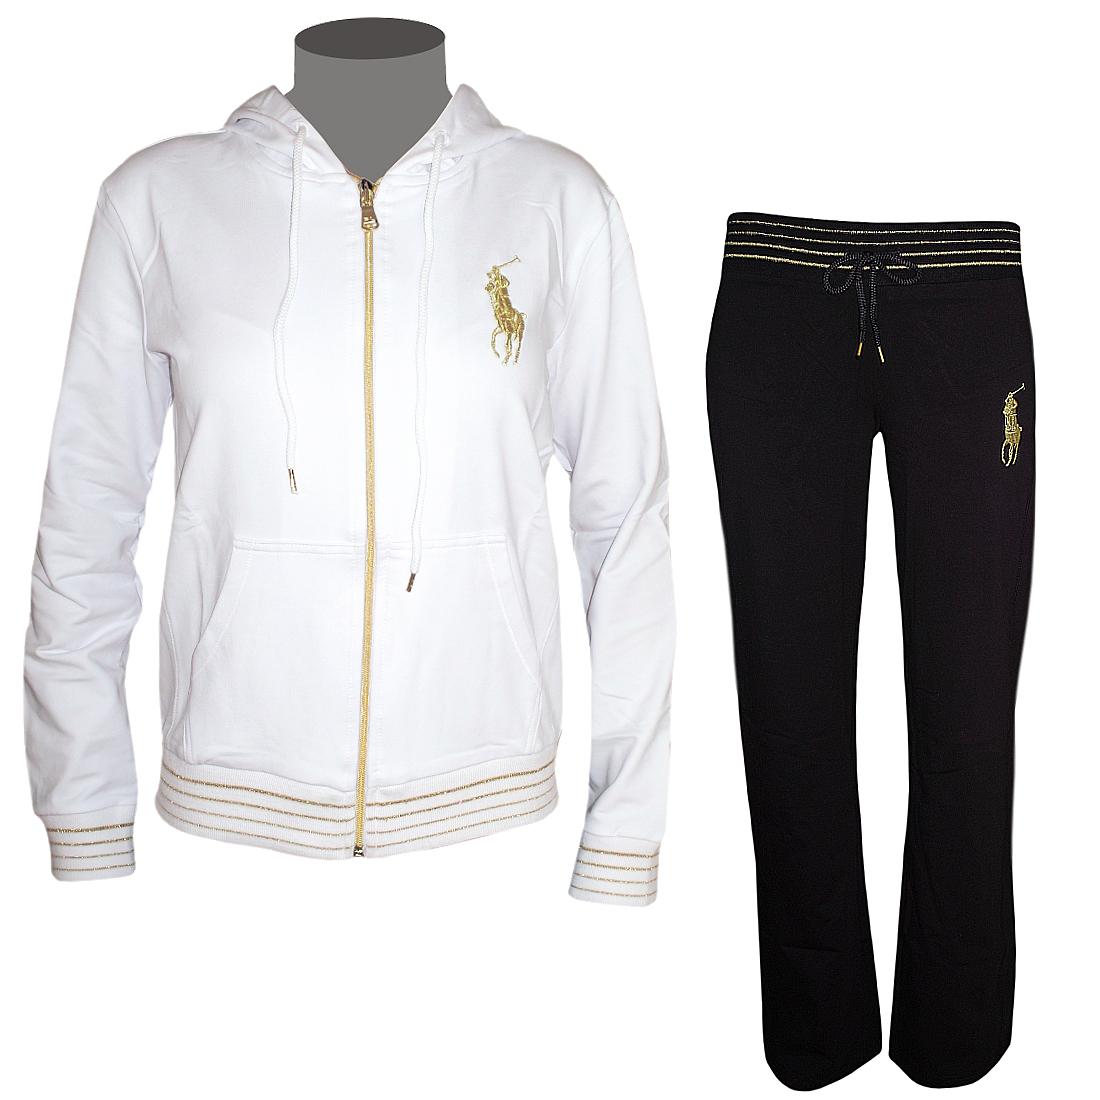 polo ralph lauren jogginganzug fxdirect ralph lauren polo. Black Bedroom Furniture Sets. Home Design Ideas